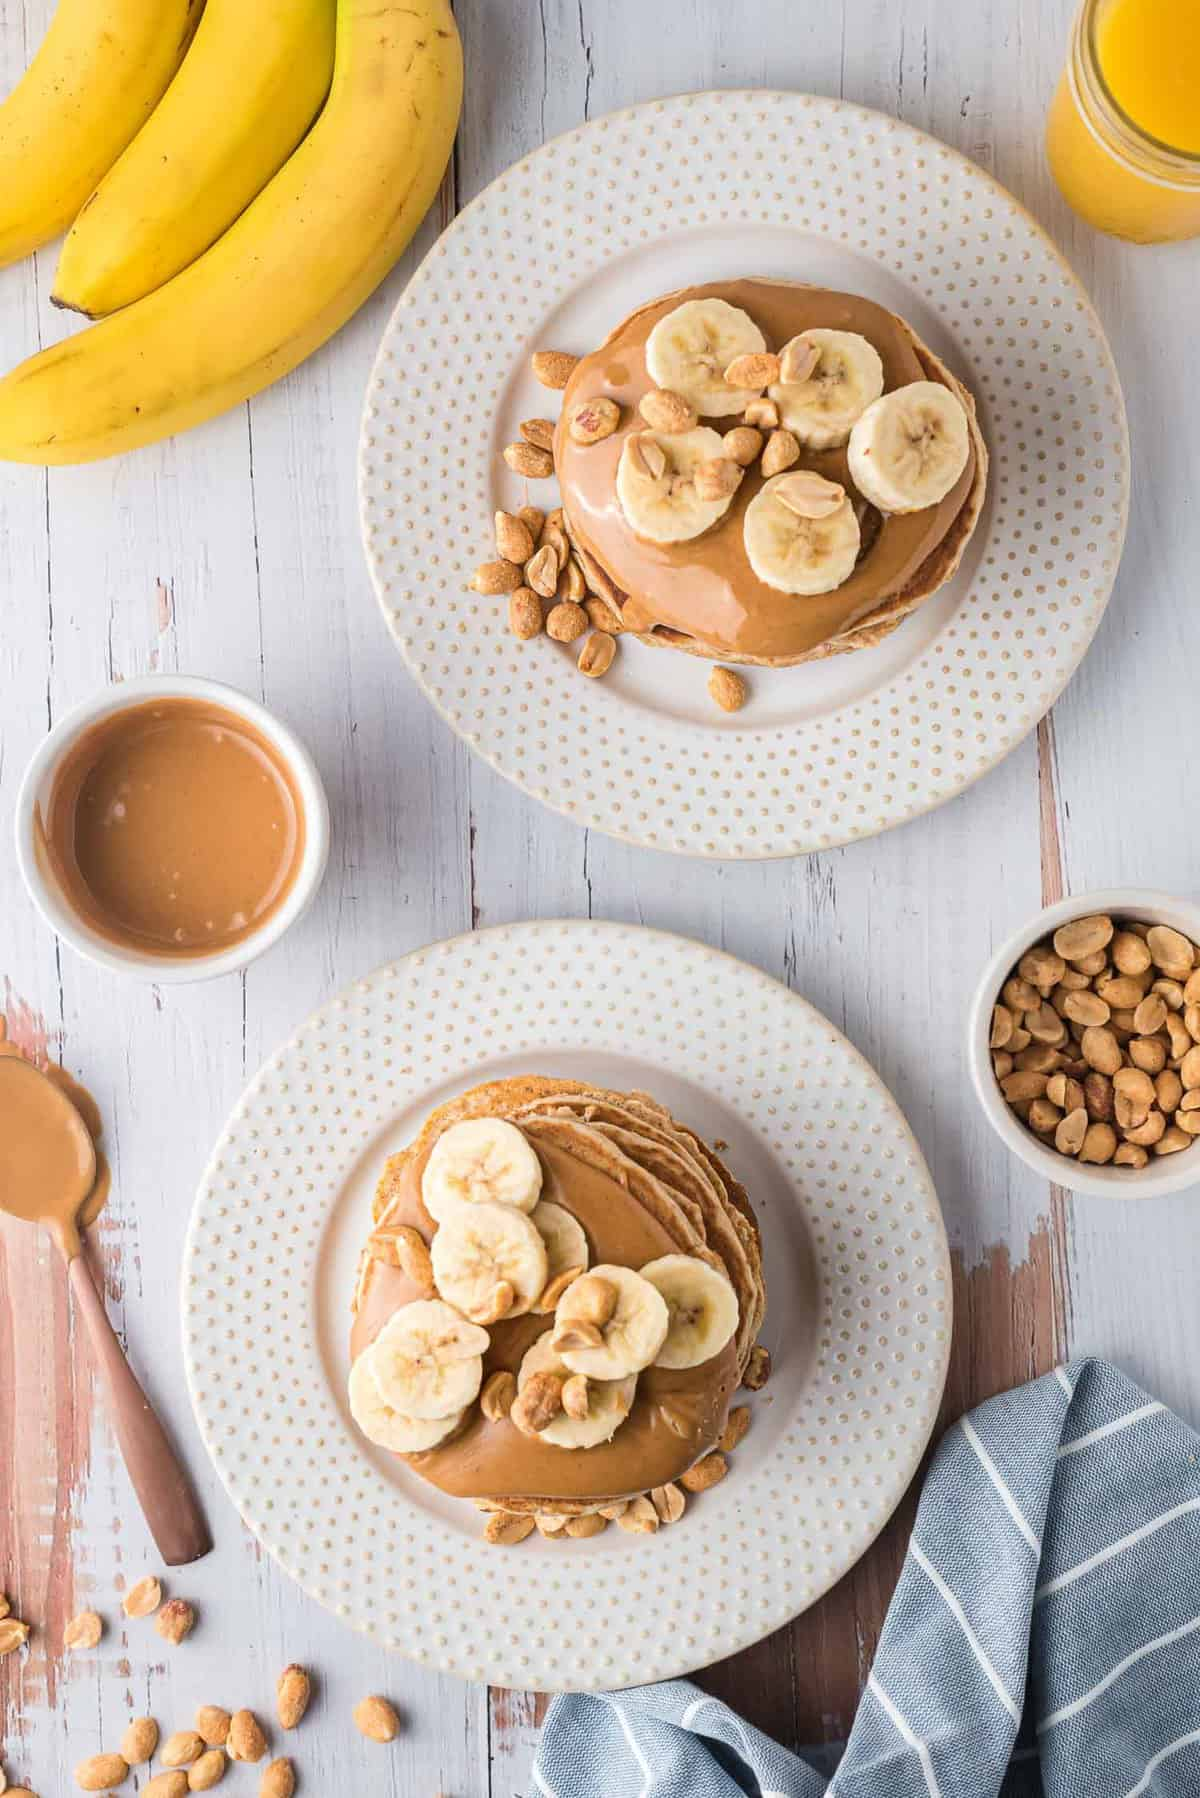 Overhead view of two stack of pancakes on white plates, topped with peanut butter, peanuts, and banana slices.